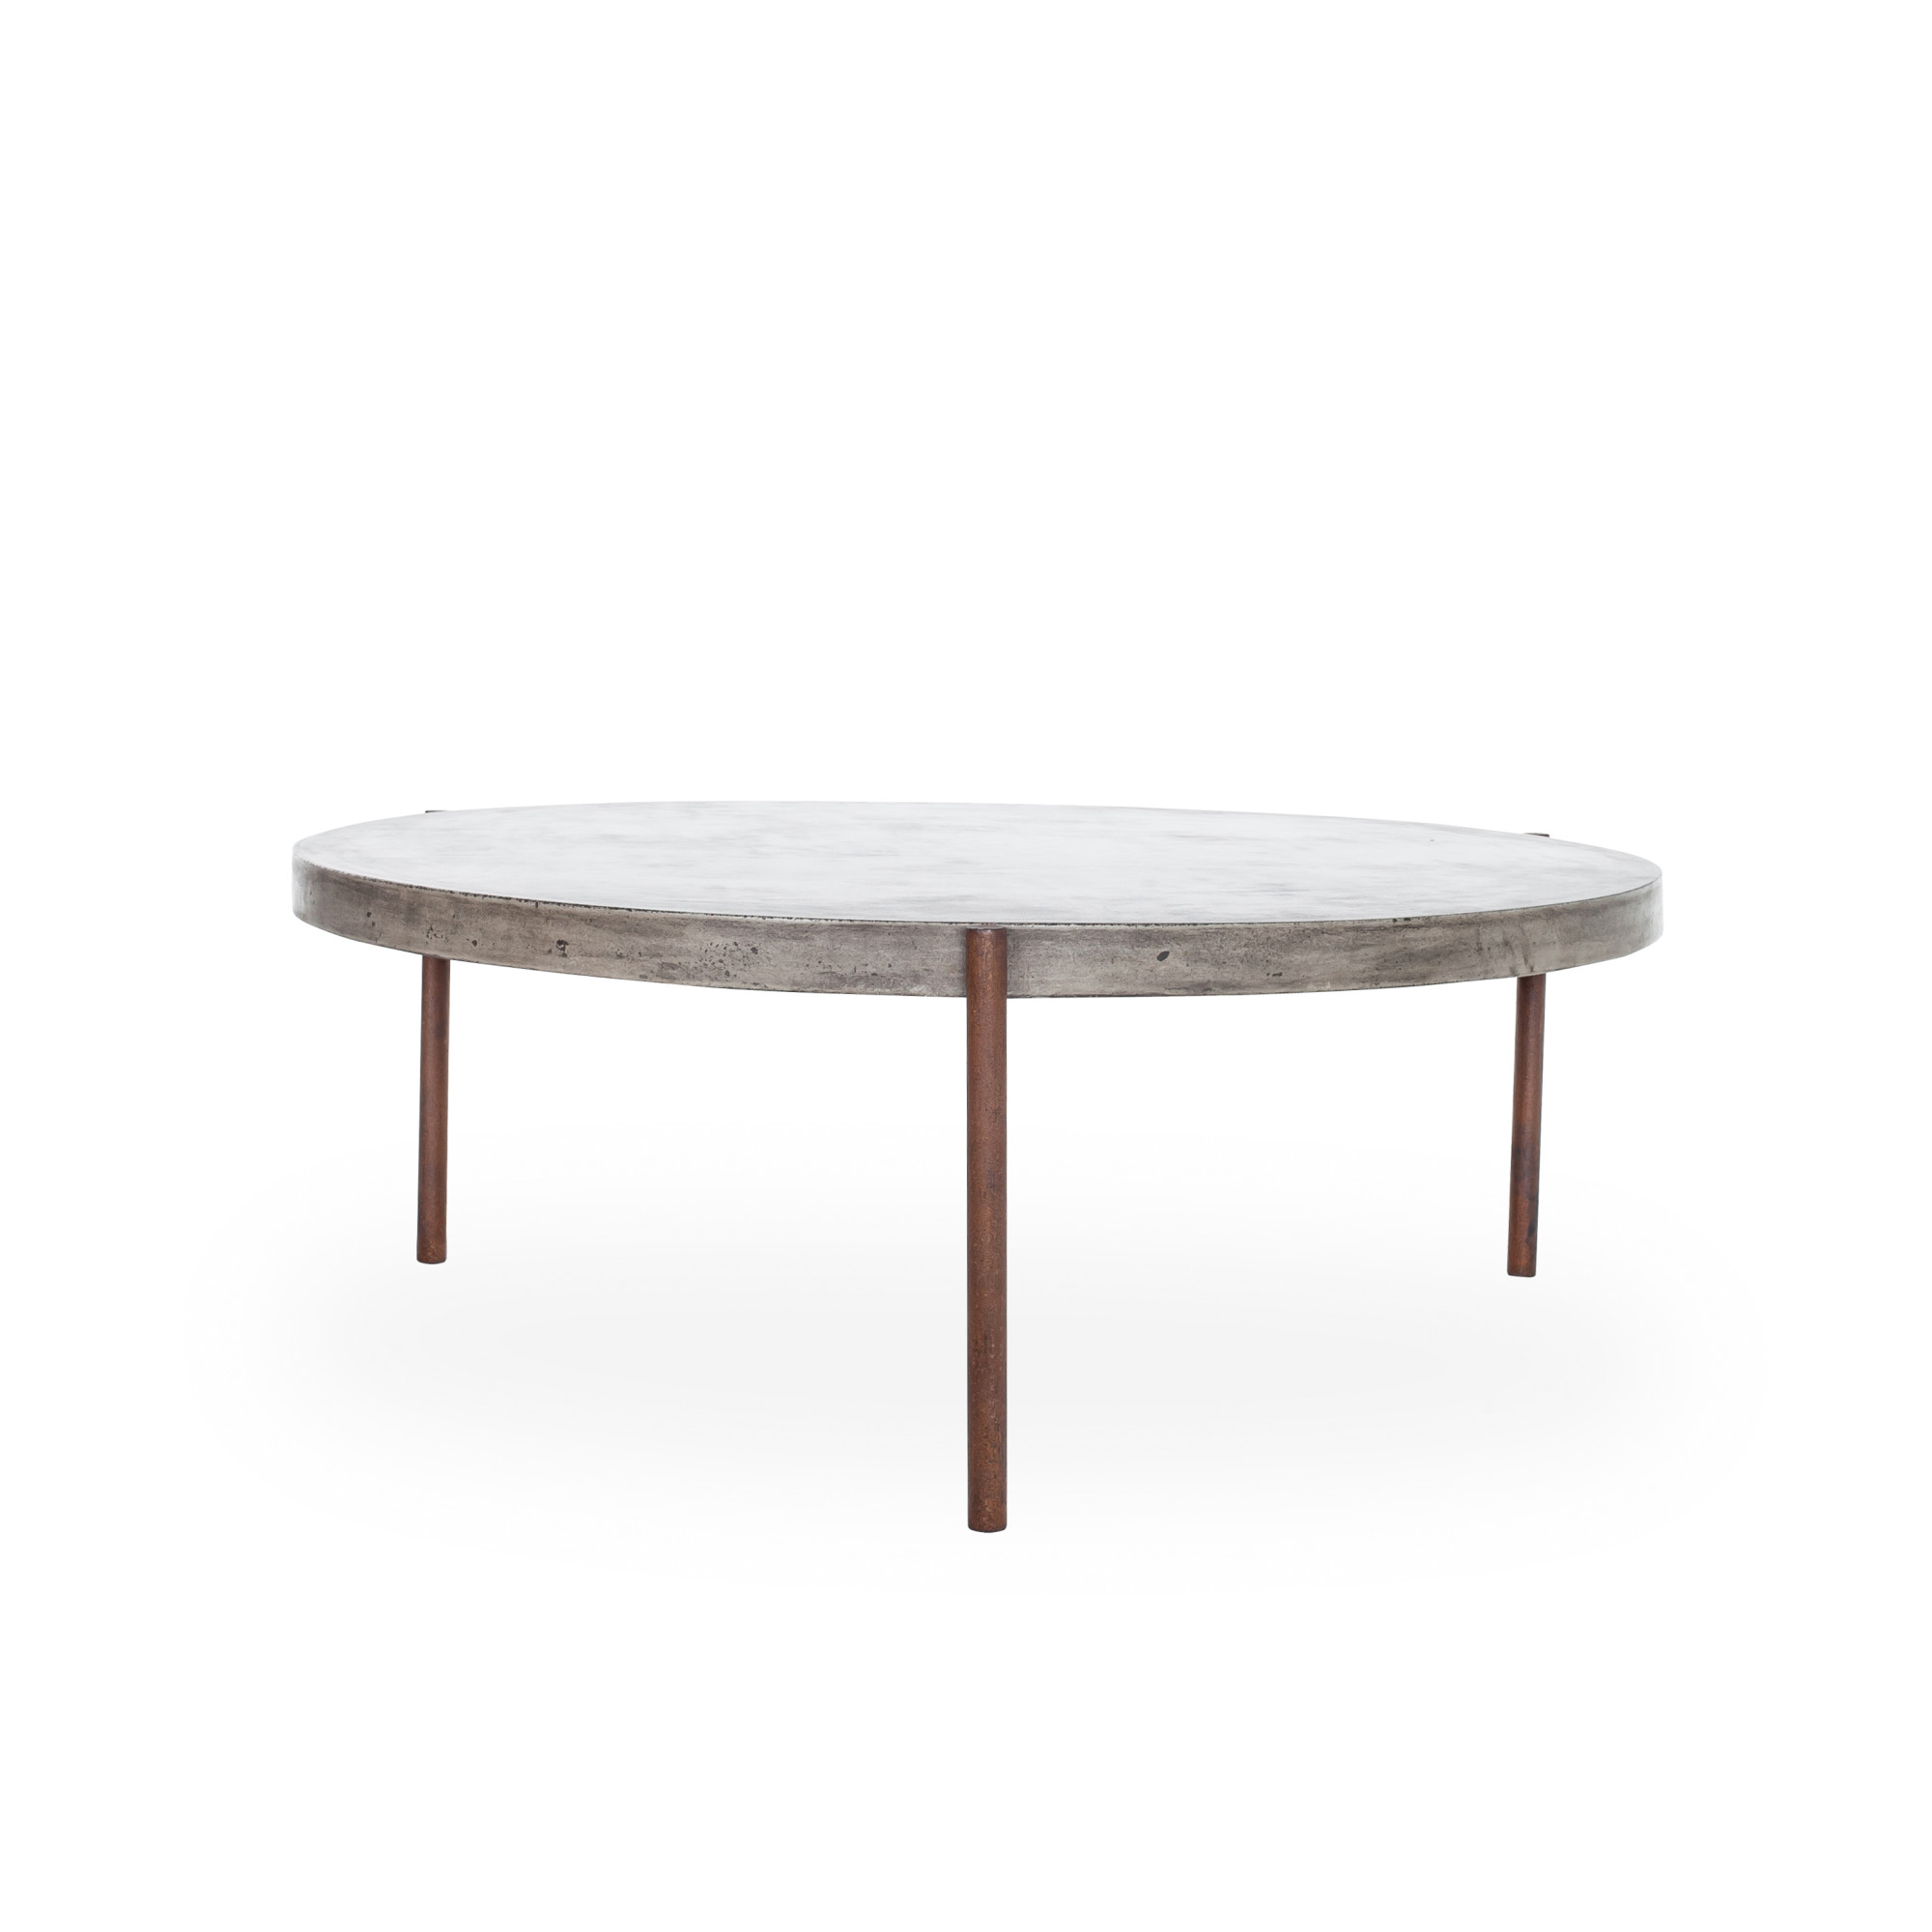 Details About Moes Home Collection Bq 1009 Gray Mendez 36 Wide Concrete Outdoor Coffee Table